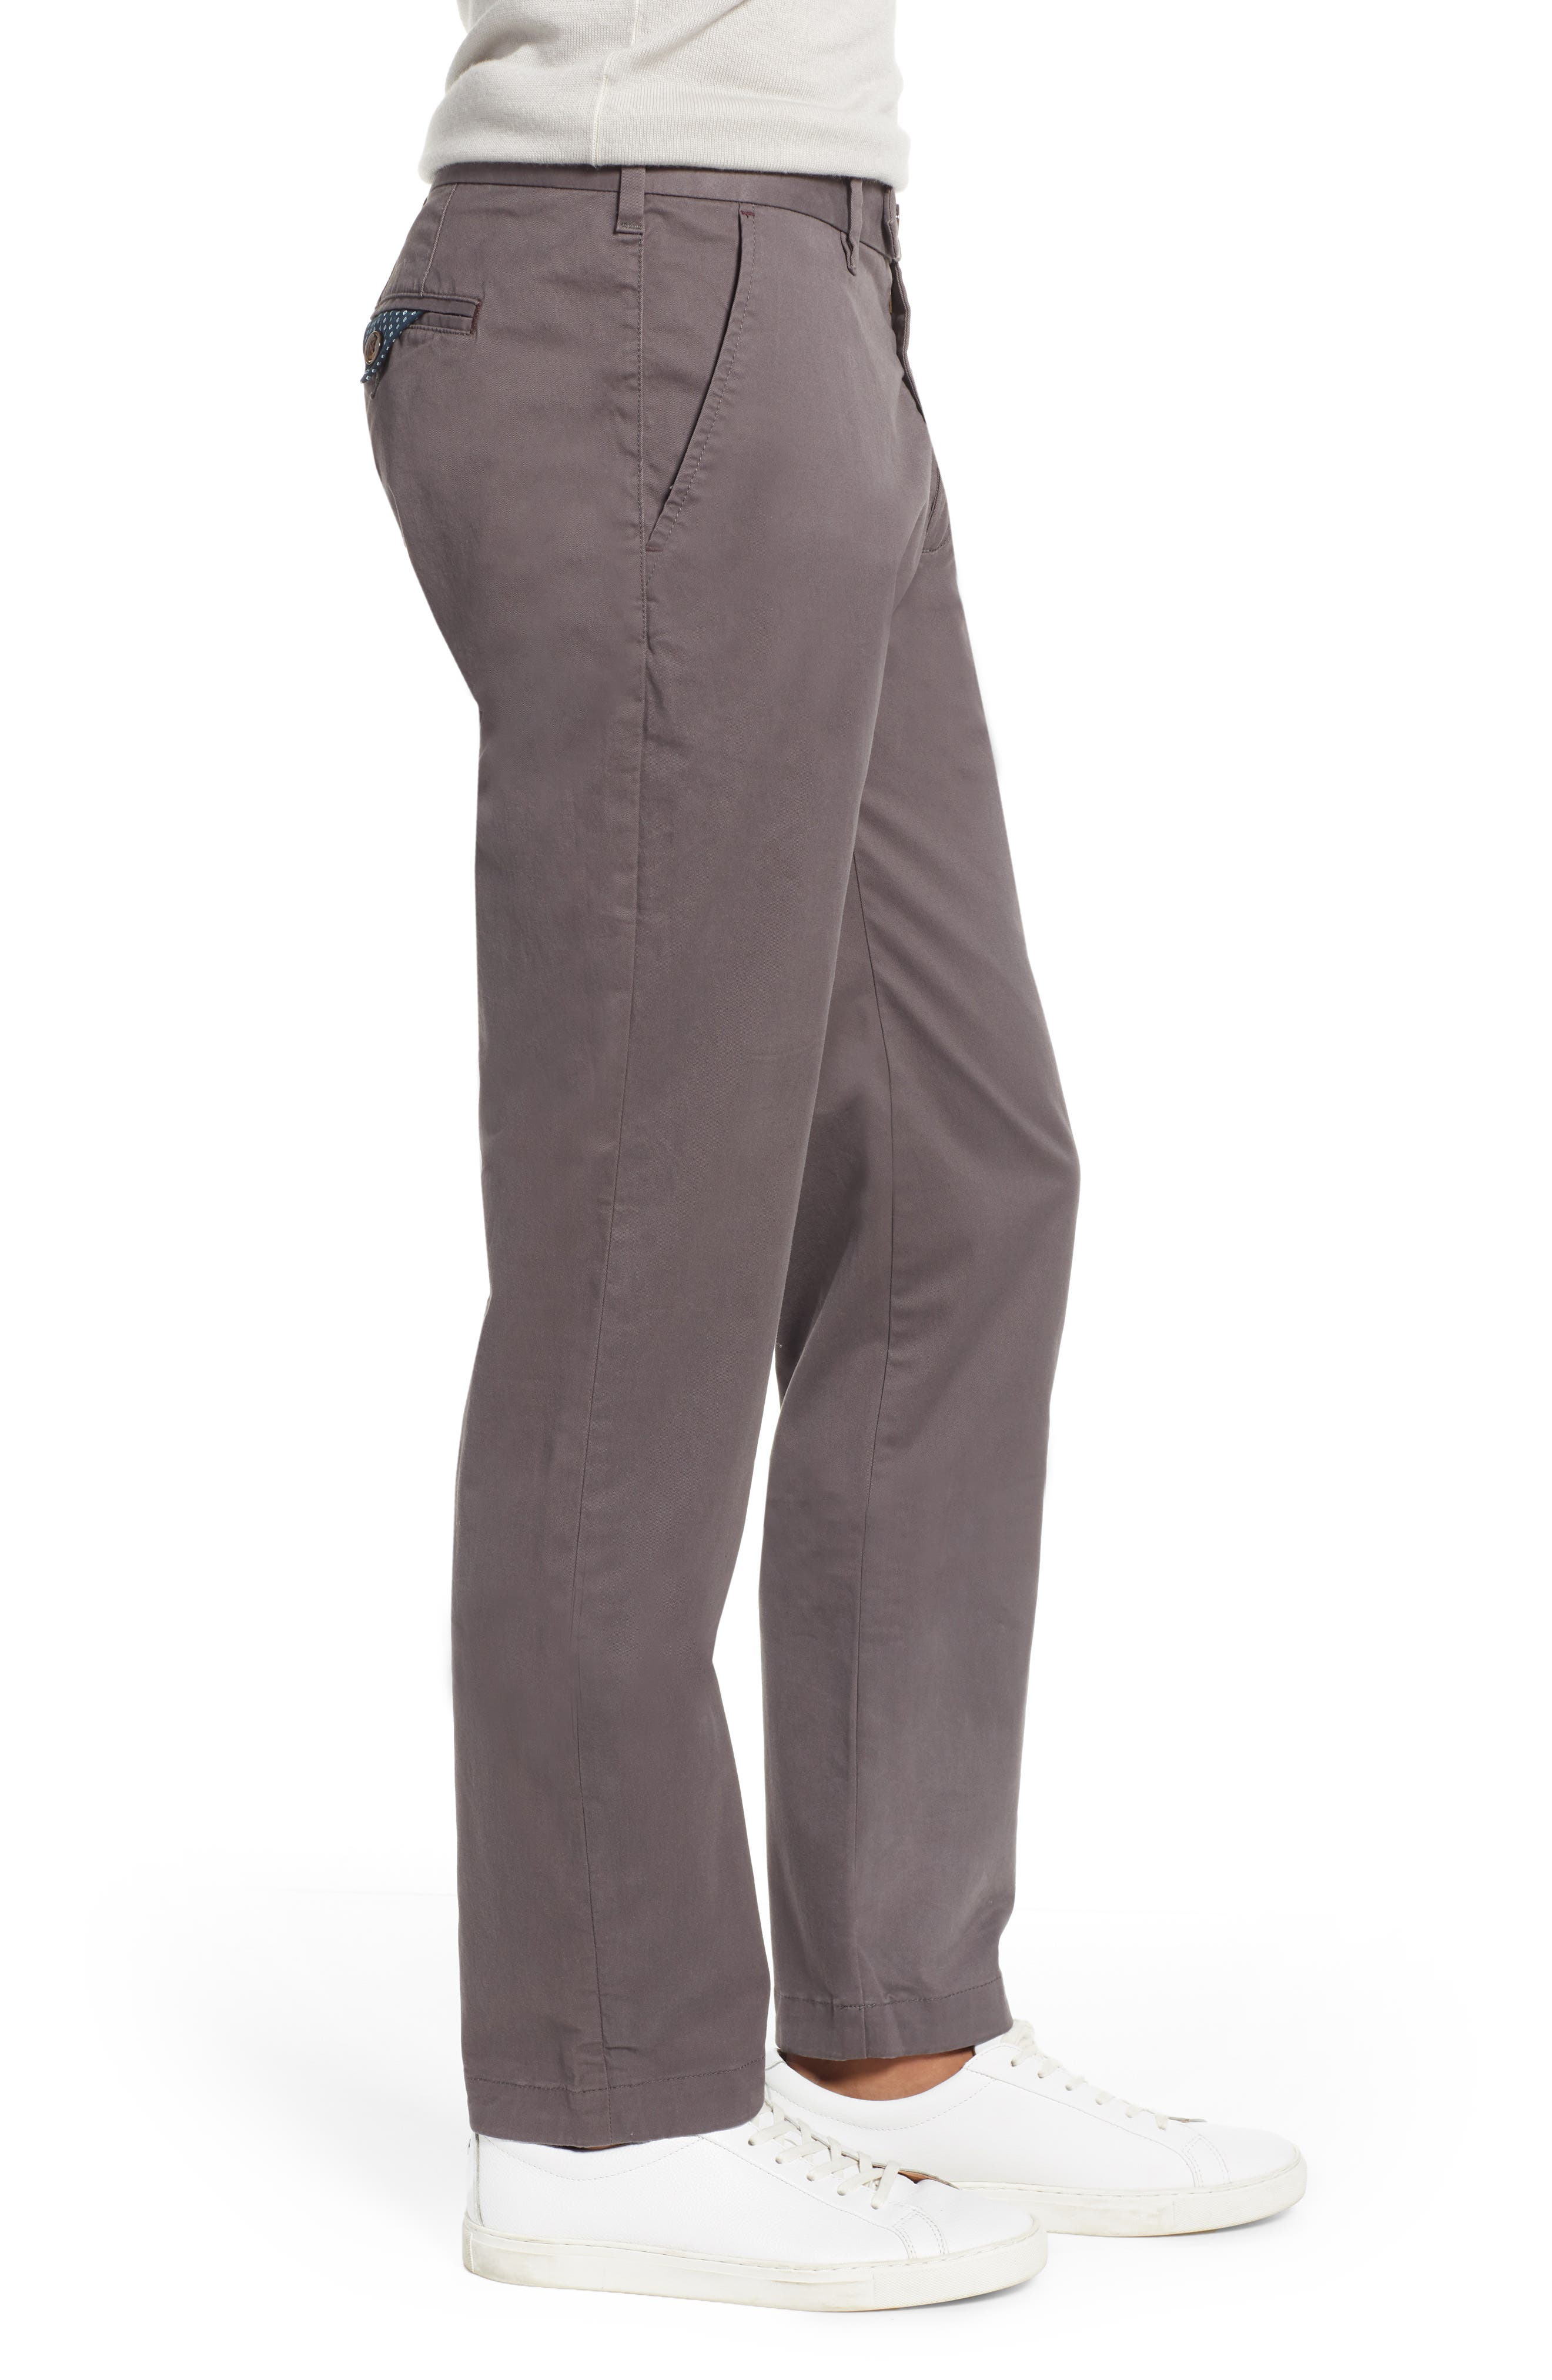 TED BAKER LONDON, Selebtt Slim Fit Stretch Cotton Chinos, Alternate thumbnail 3, color, 020